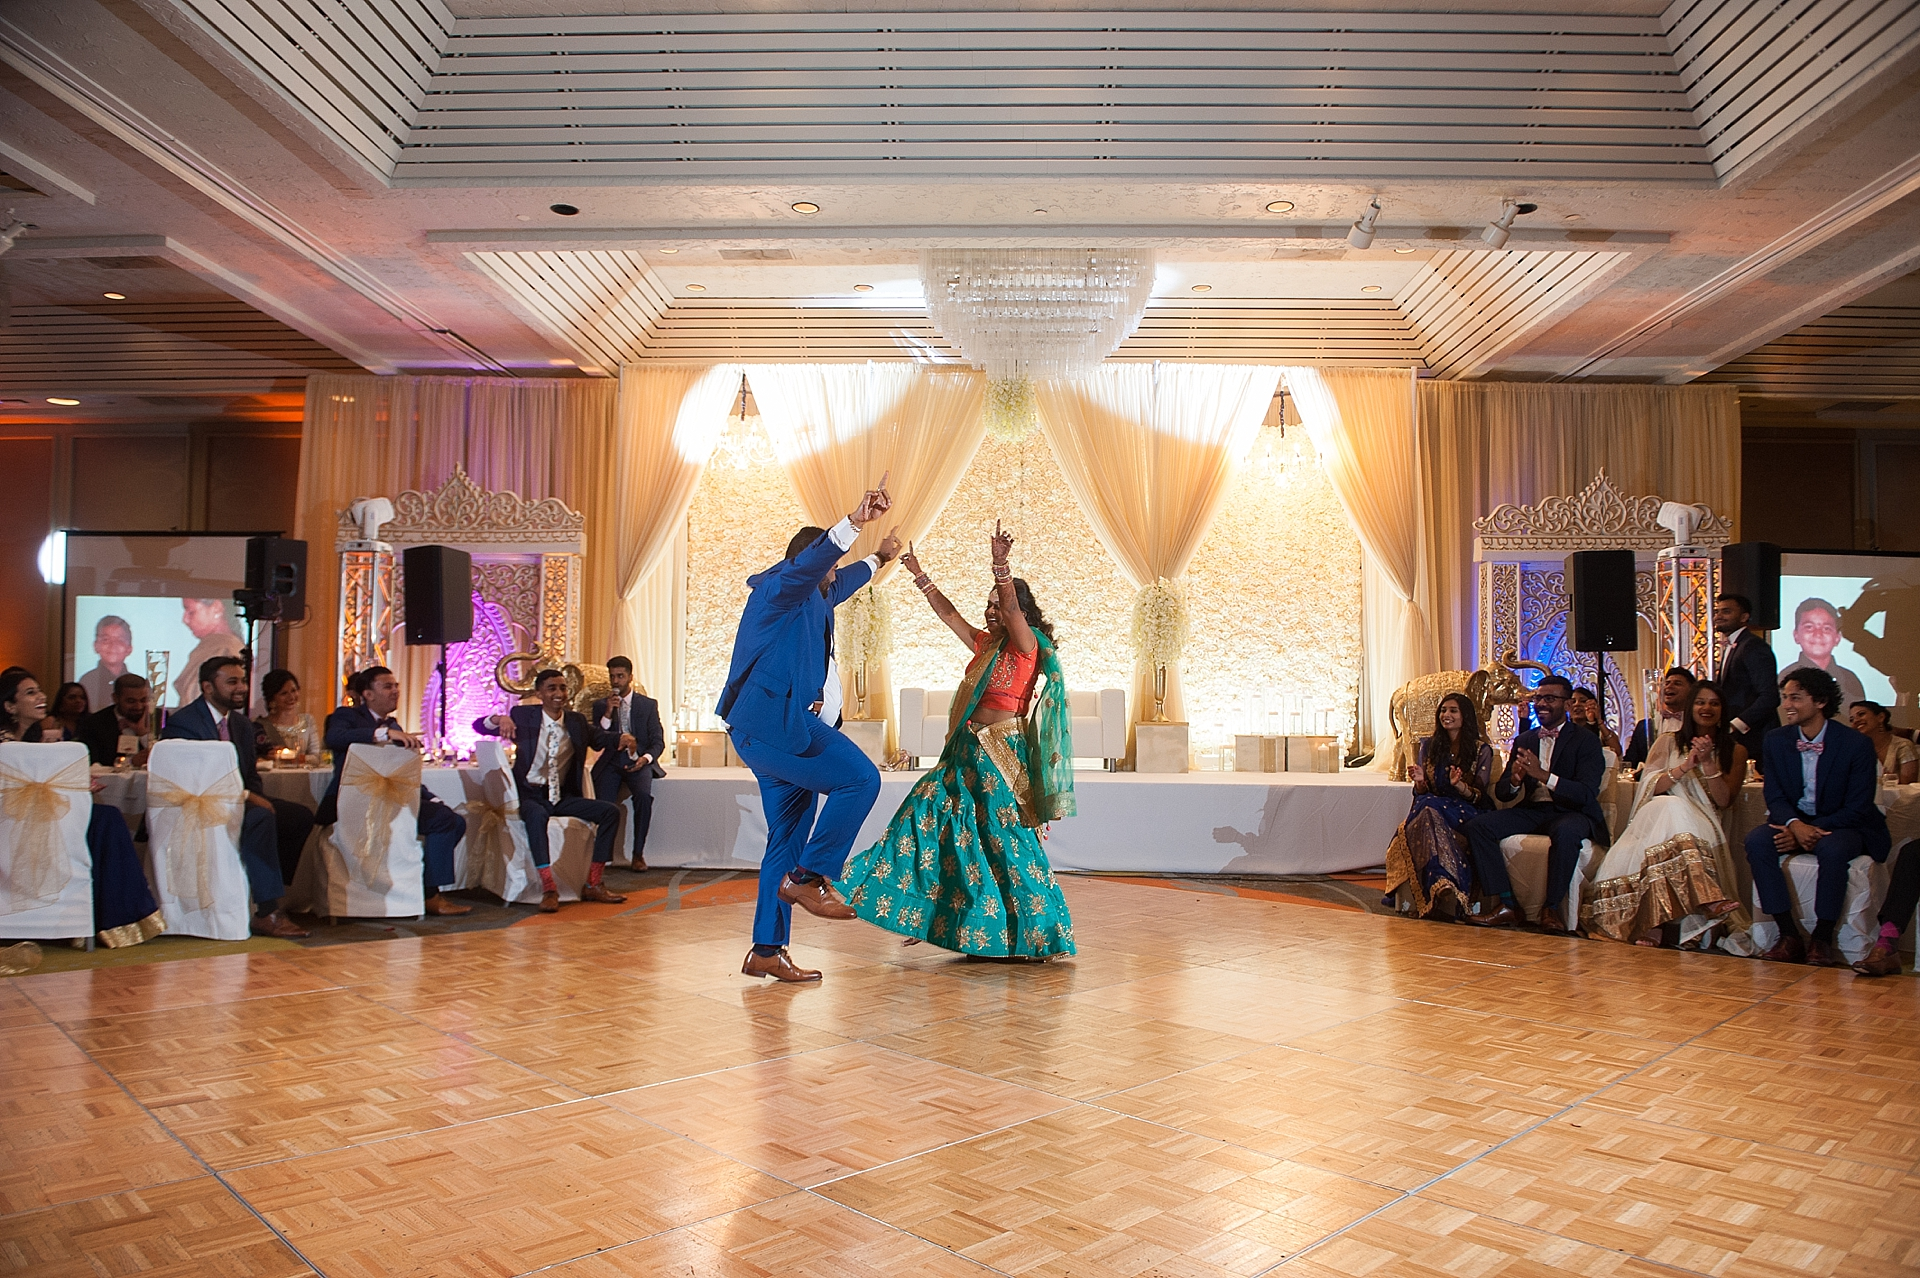 Prexa_Harry_Columbus_Crown_Plaza_Indian_Wedding0114.jpg